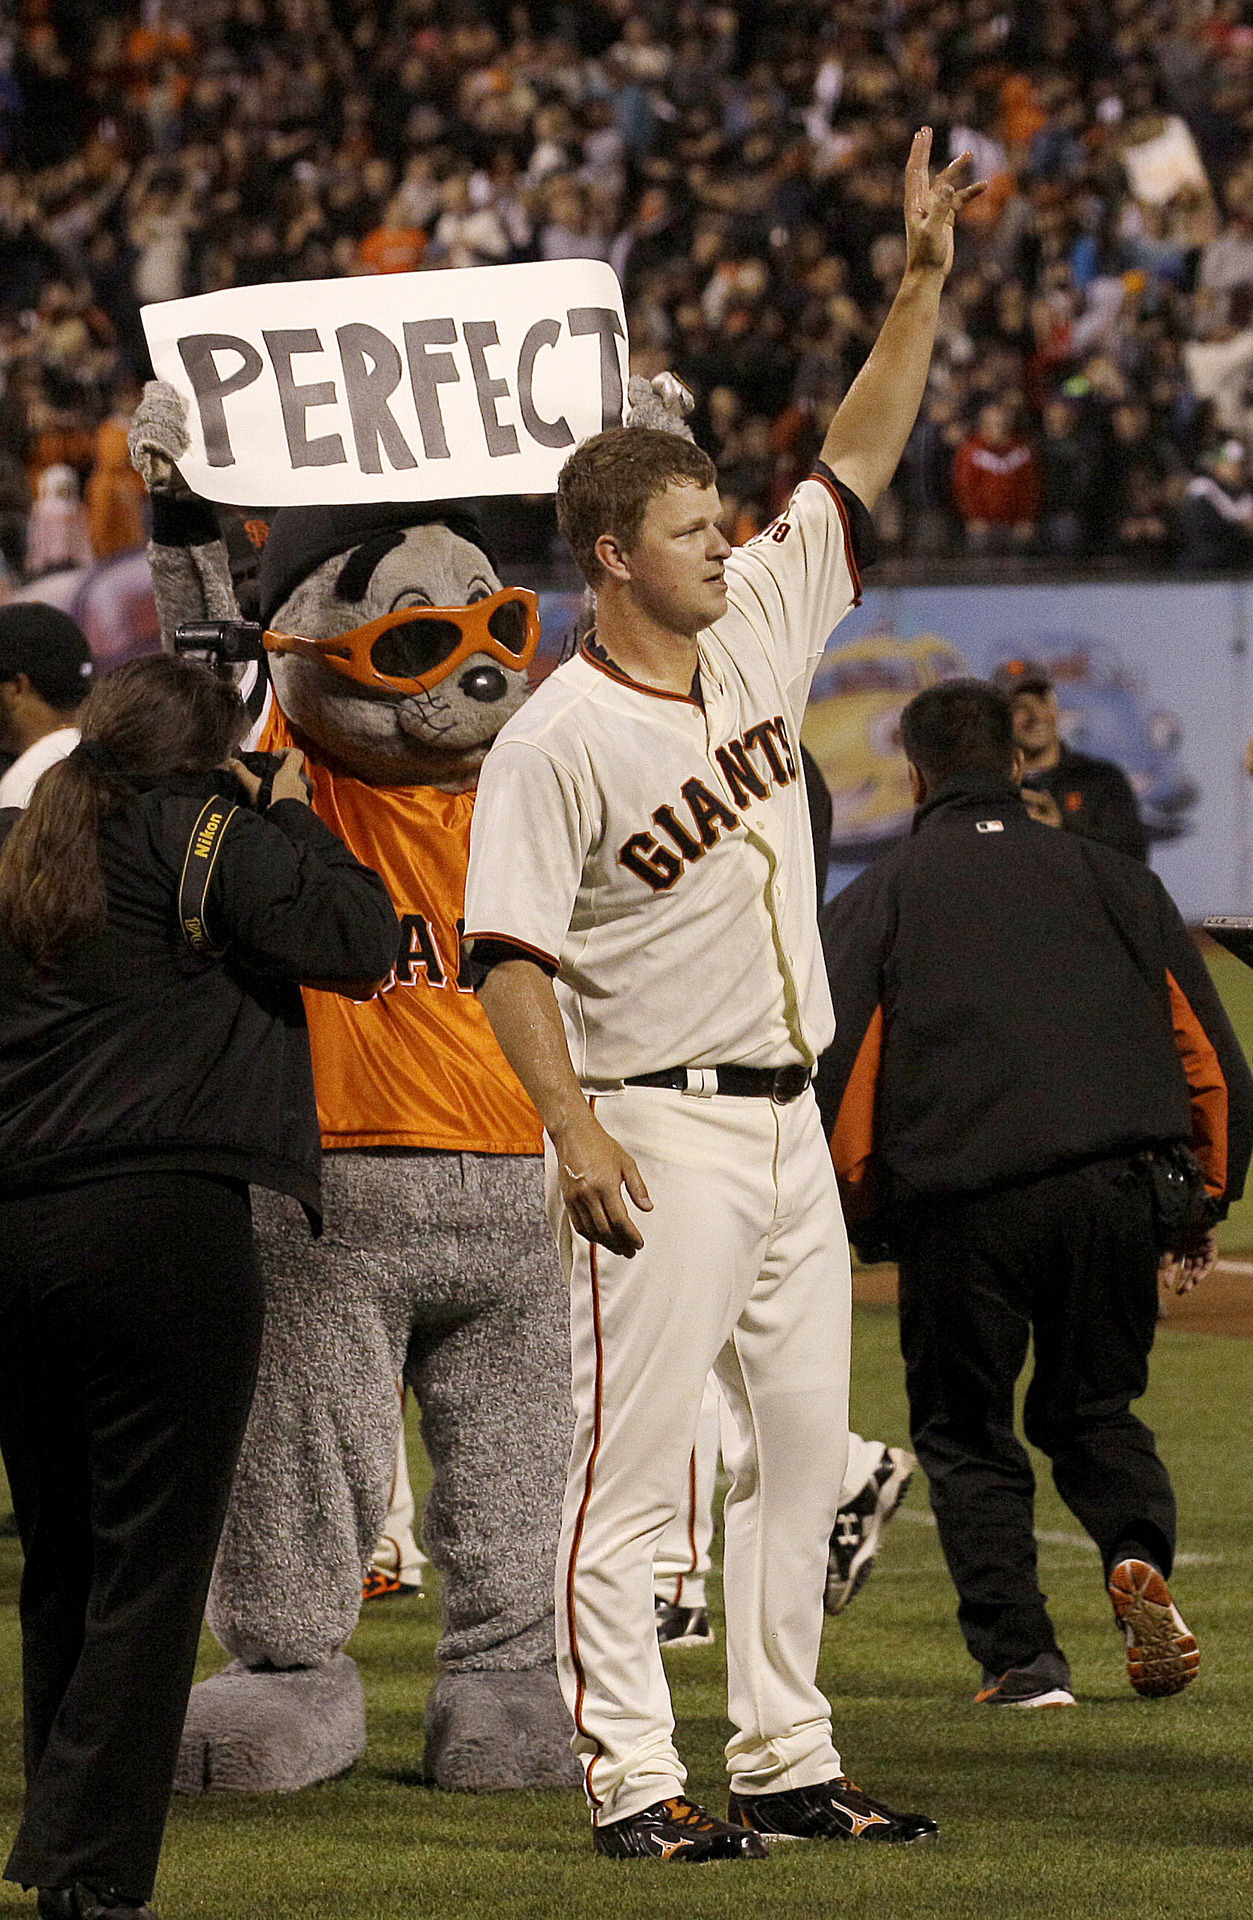 sfgiants:  First perfect game in Giants history.